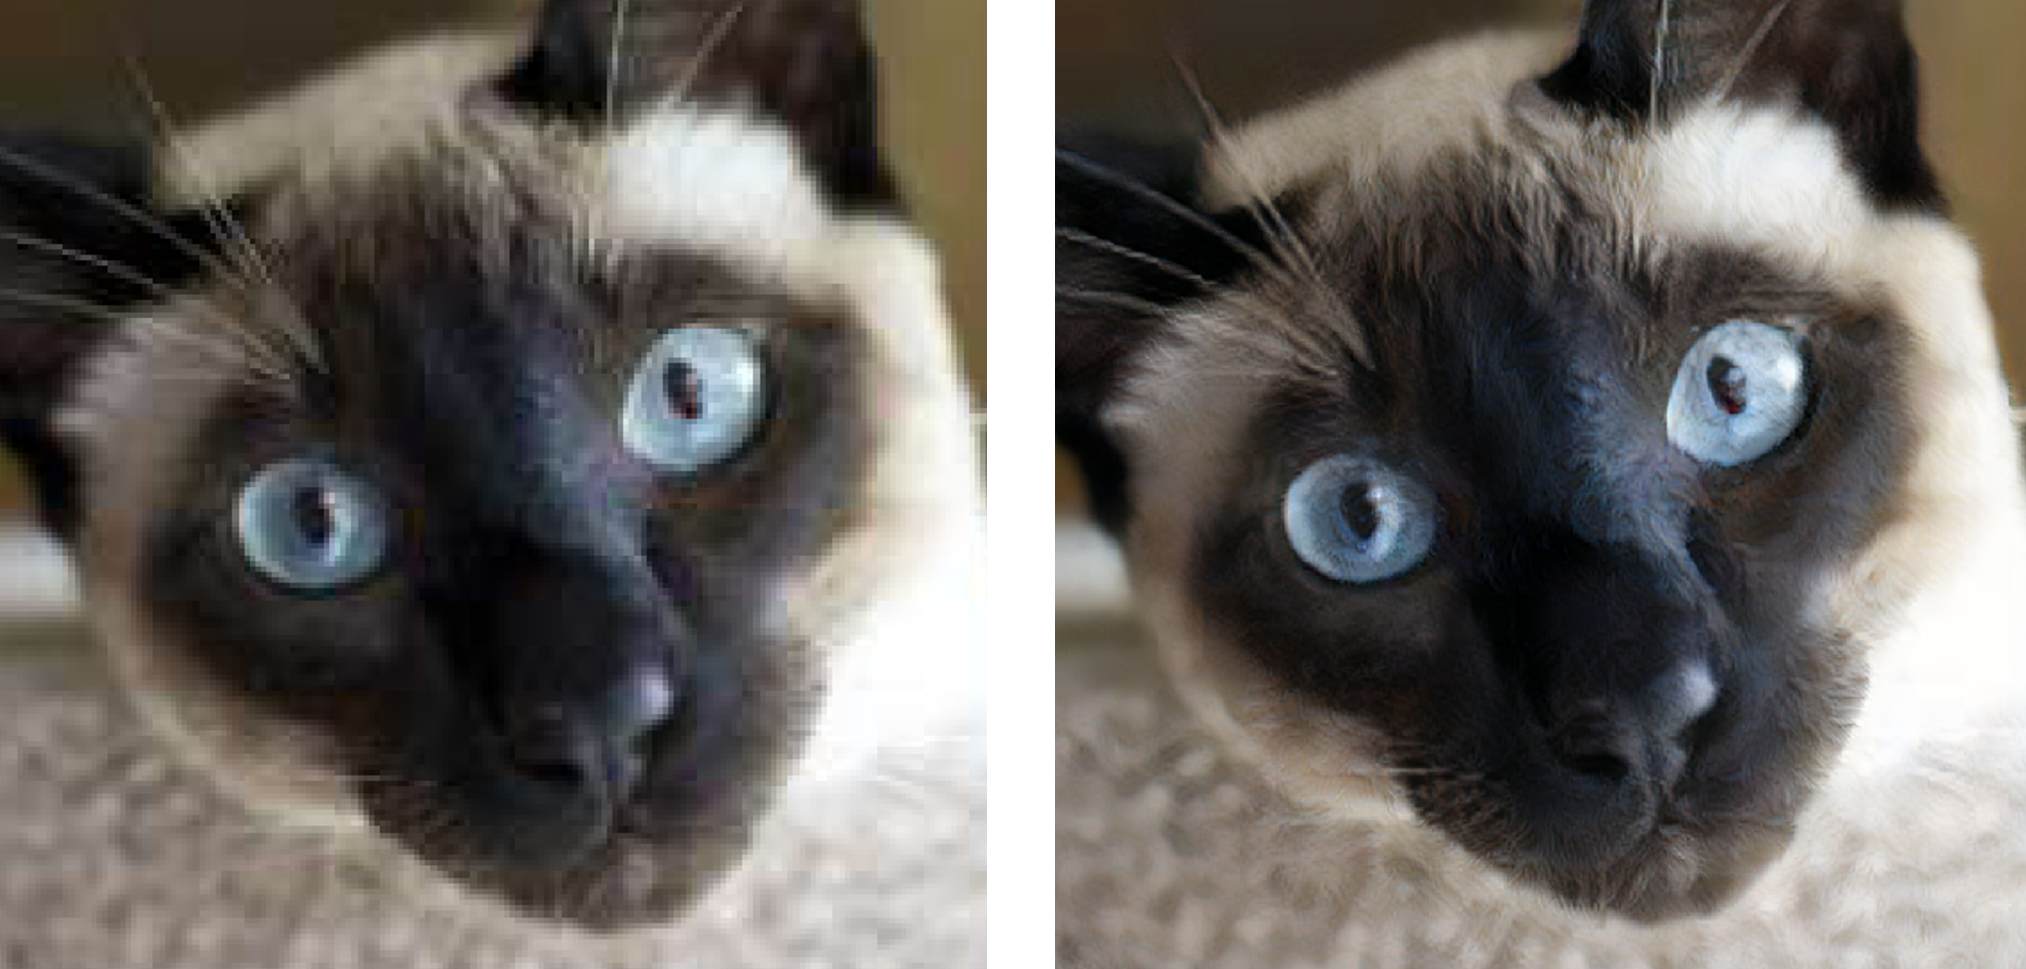 Low resolution jpeg image (left) upsampled with decrappify (right)